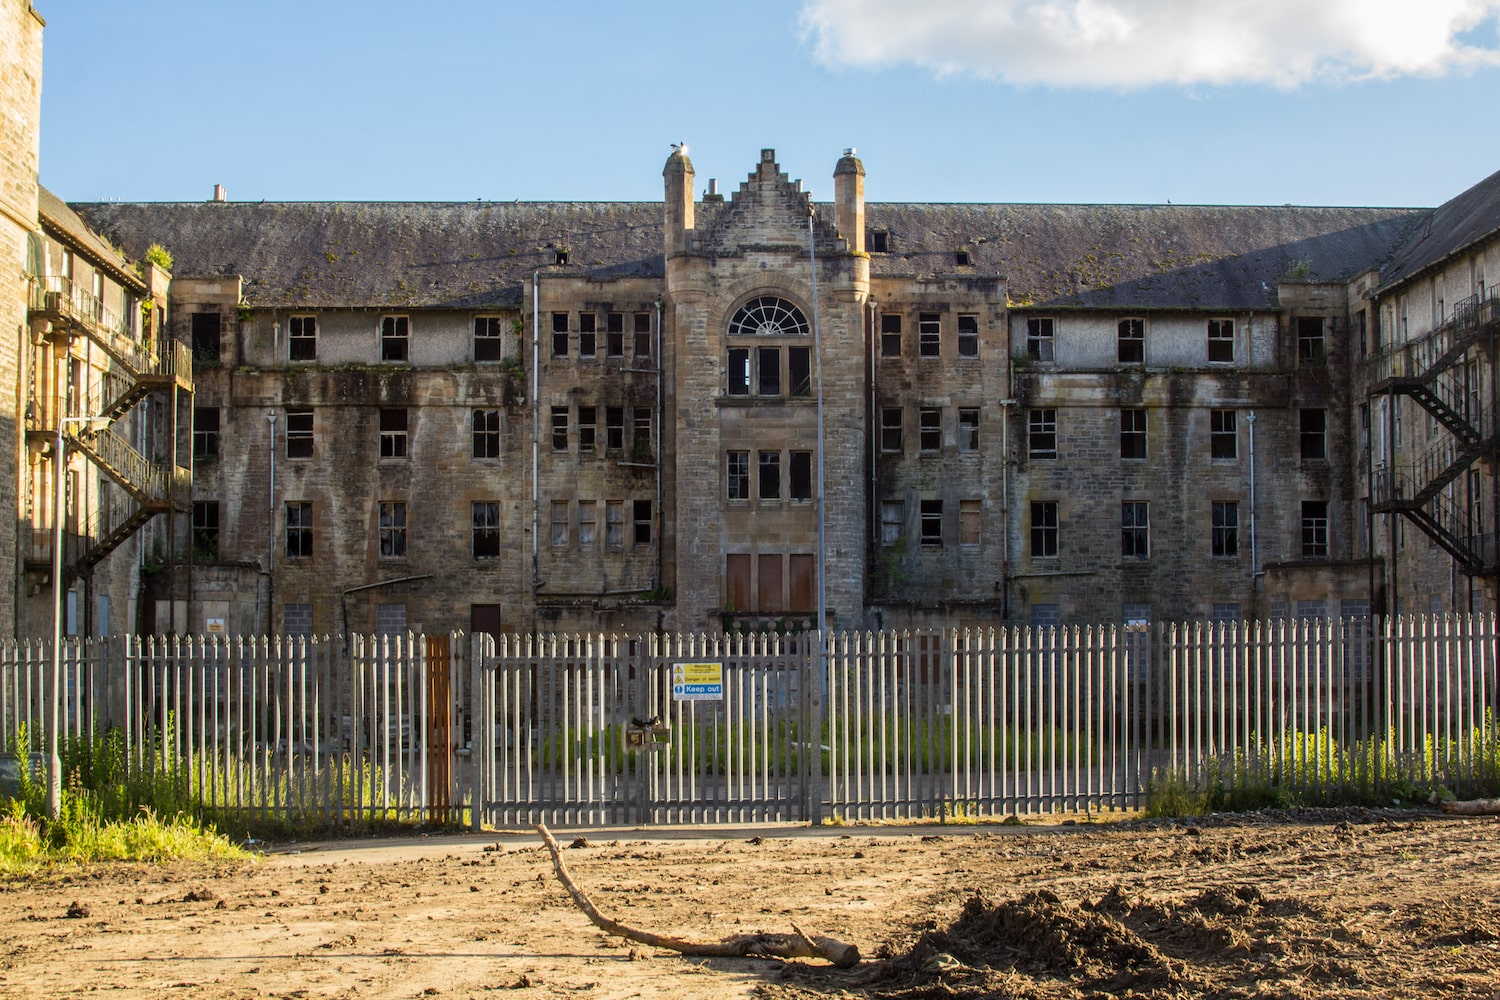 Exploring Abandoned Hospitals And Asylums A 2020 Primer